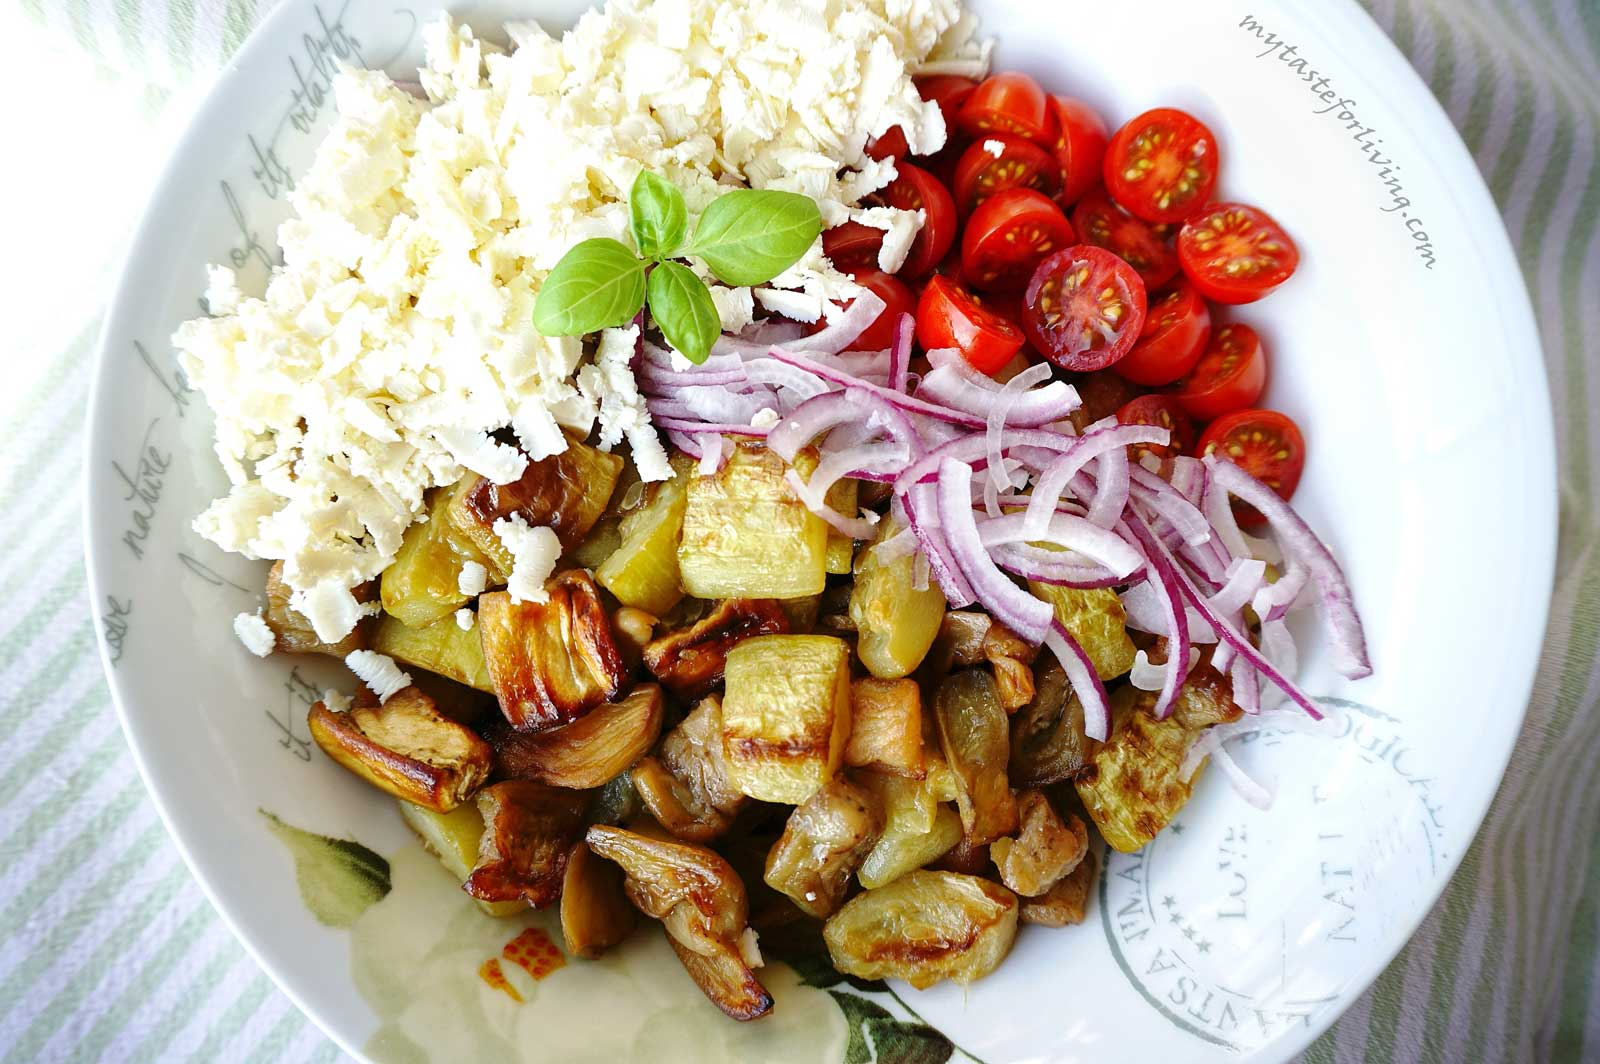 Roasted zucchini and eggplant salad with cherry tomatoes, red onion and feta cheese.